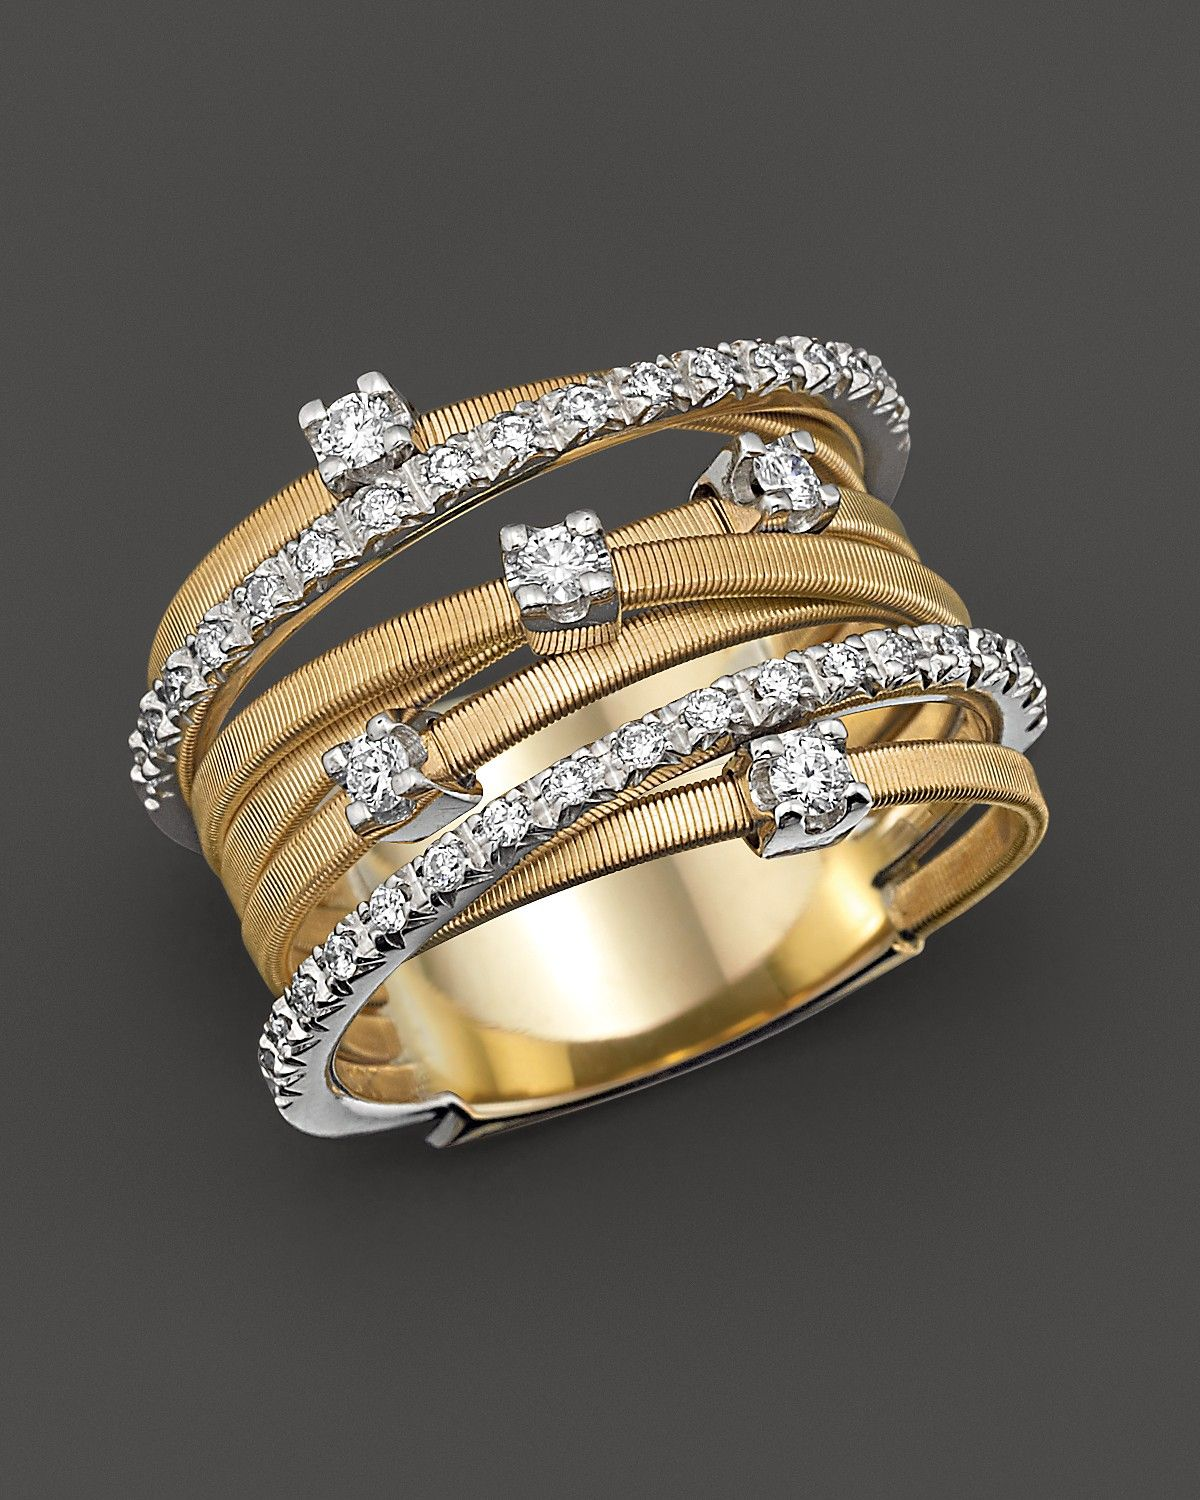 2676ac944 18K Yellow Gold Goa Seven Row Ring with Diamonds   Rings   Jewelry ...